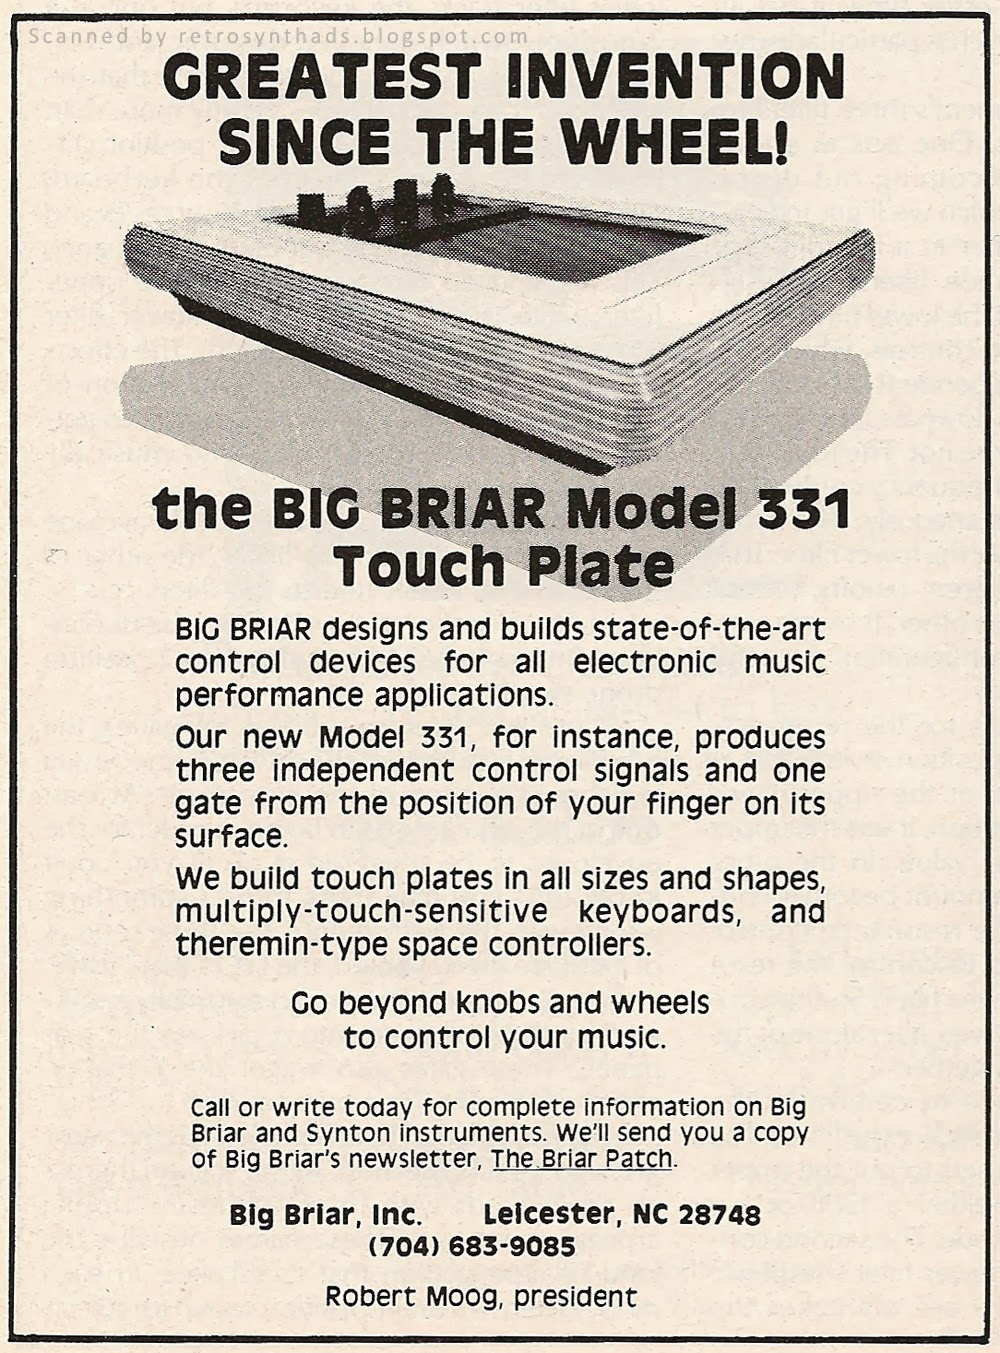 http://retrosynthads.blogspot.ca/2014/01/big-briar-inc-model-331-touch-plate.html